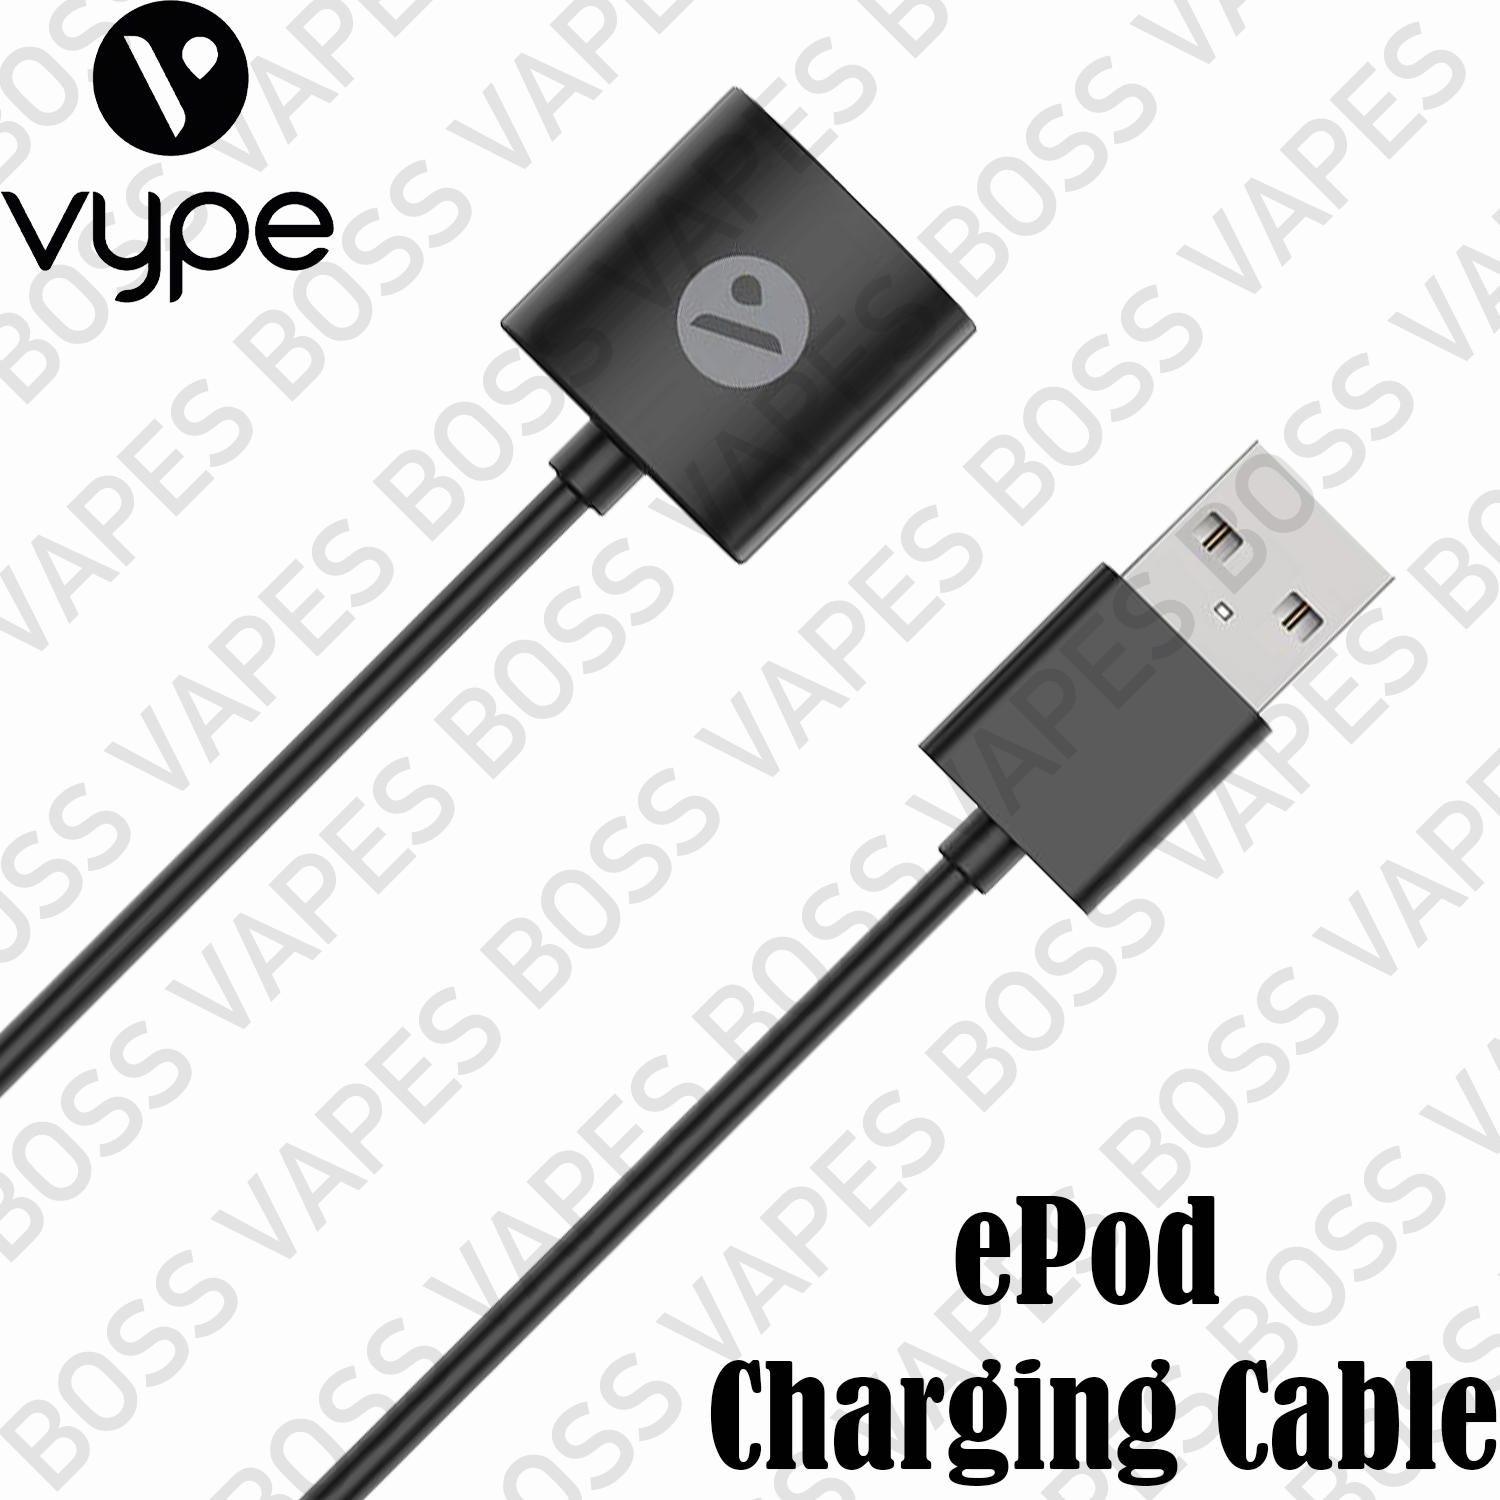 VYPE EPOD USB CHARGING CABLE